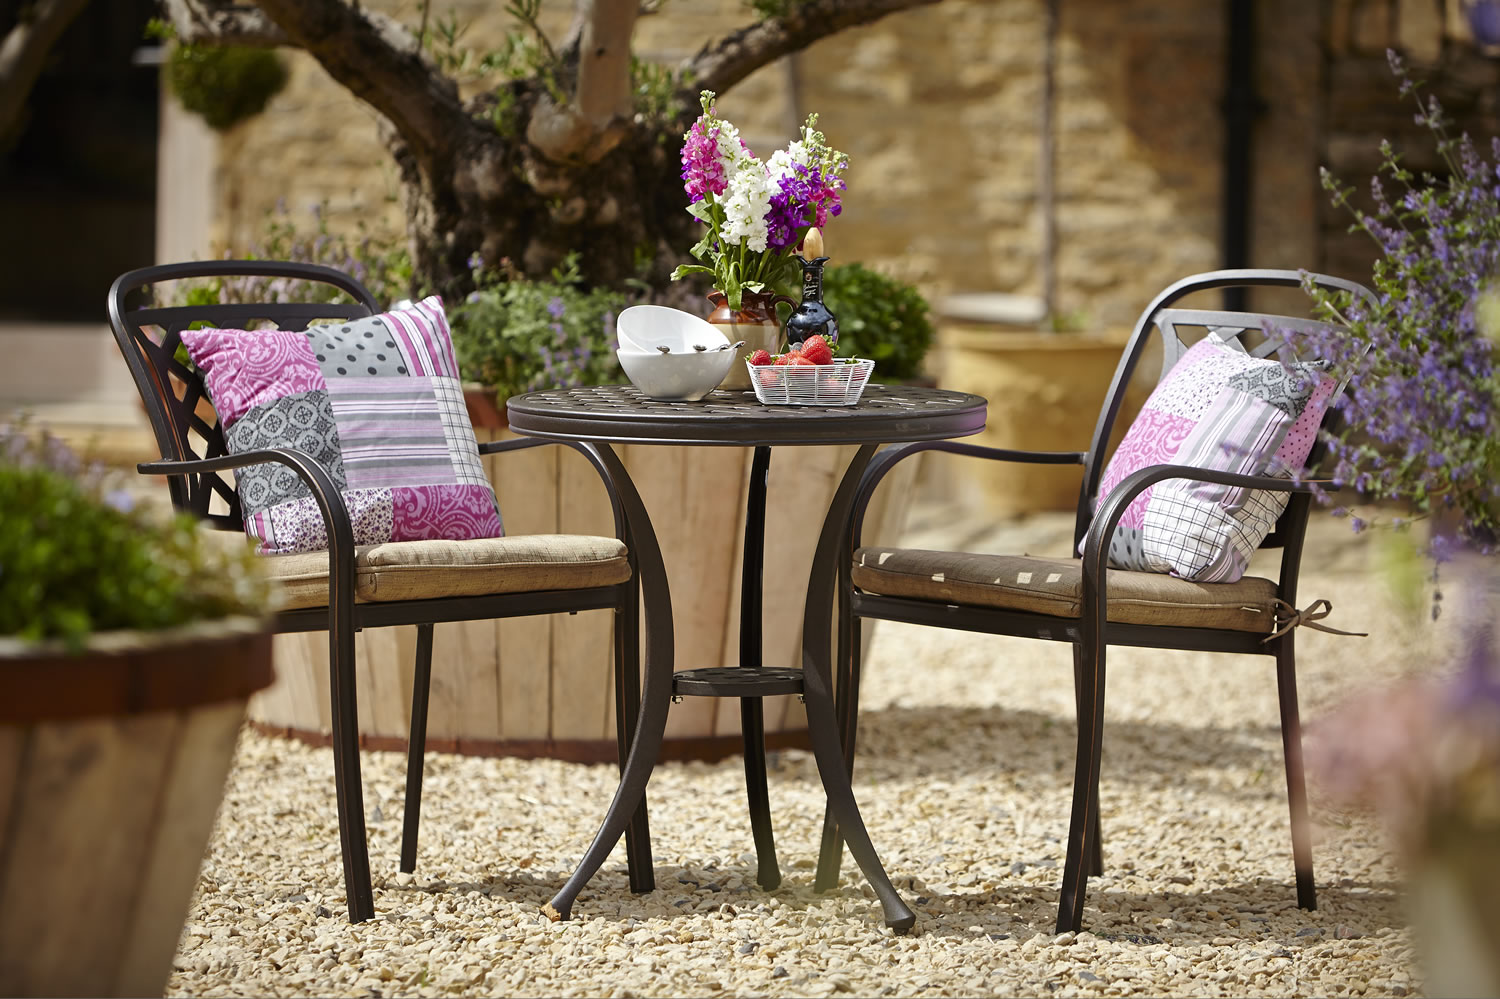 aluminium garden bistro furniture set 250 garden4less uk shop